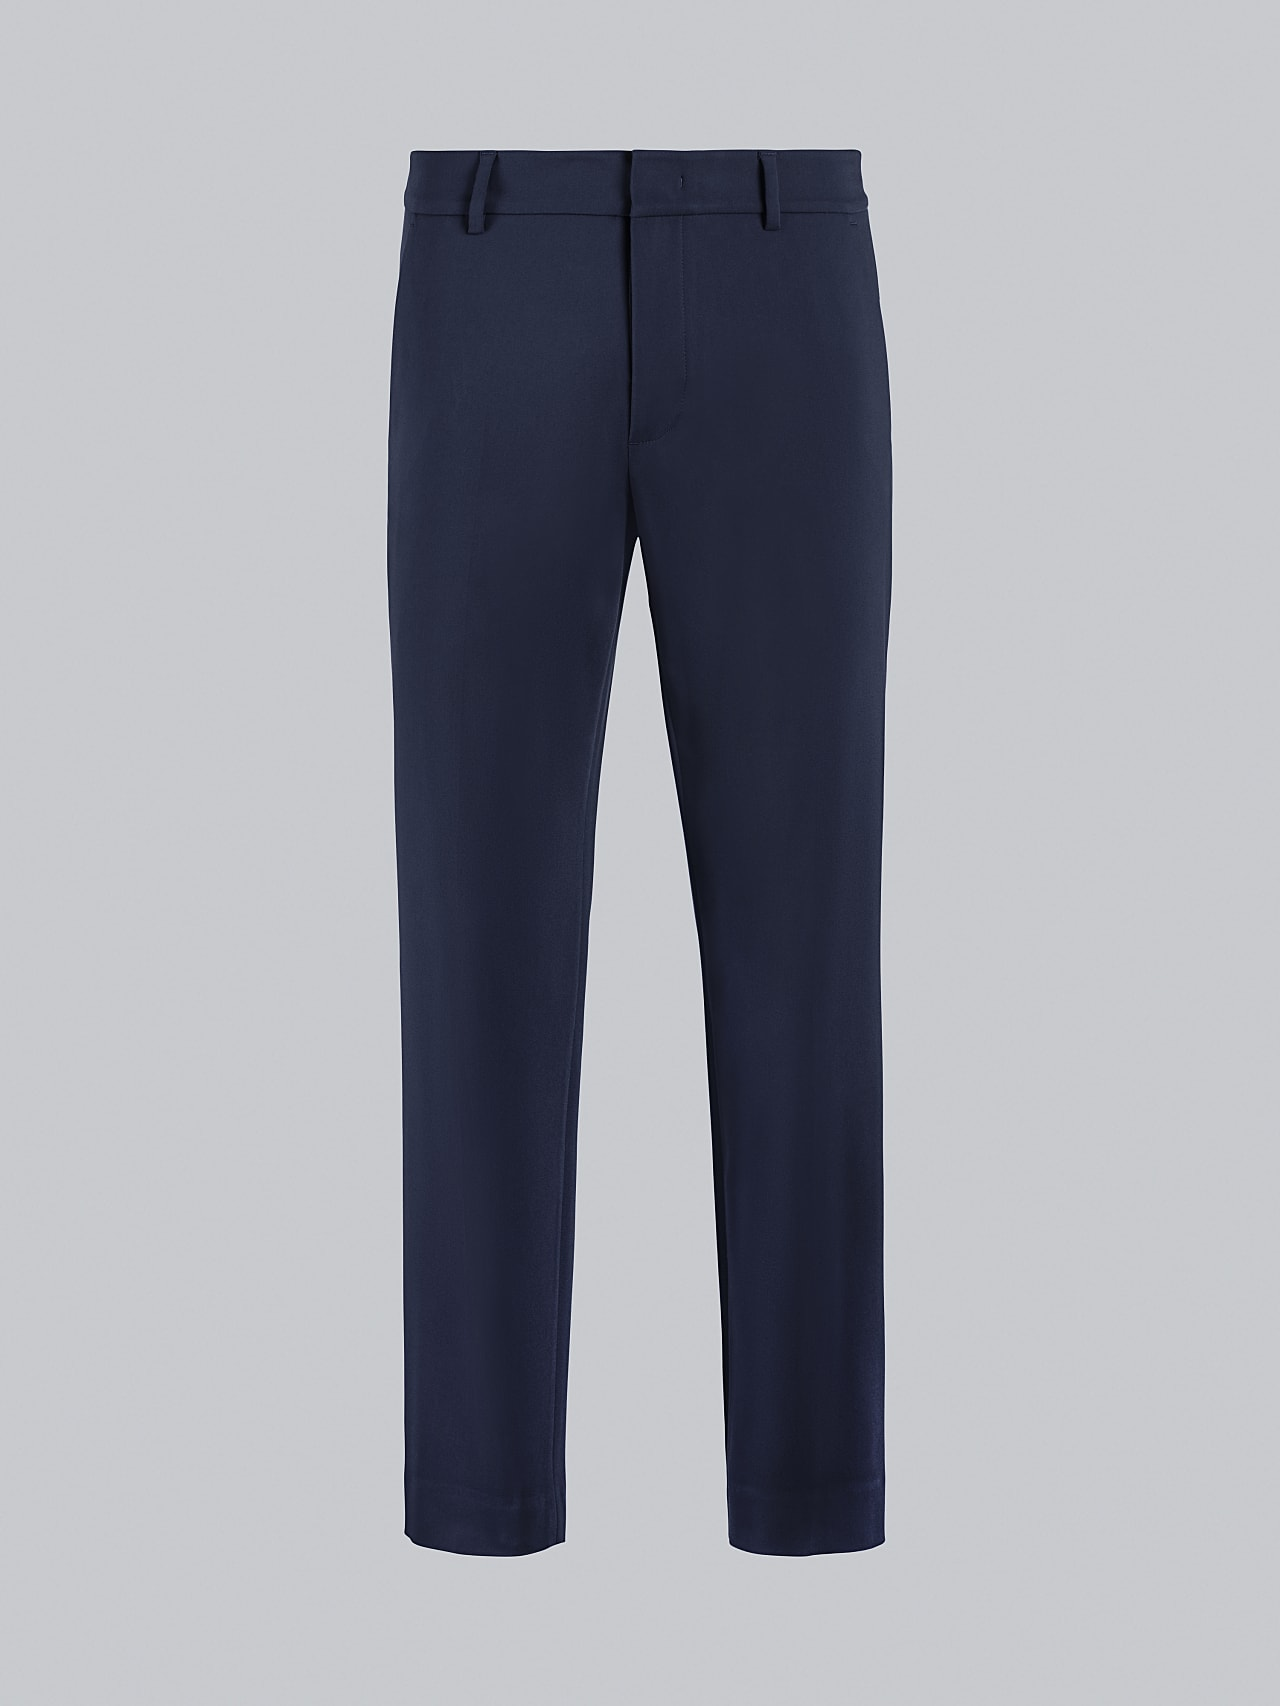 PELAN V1.Y5.02 Tapered Pants with Pleats navy Back Alpha Tauri